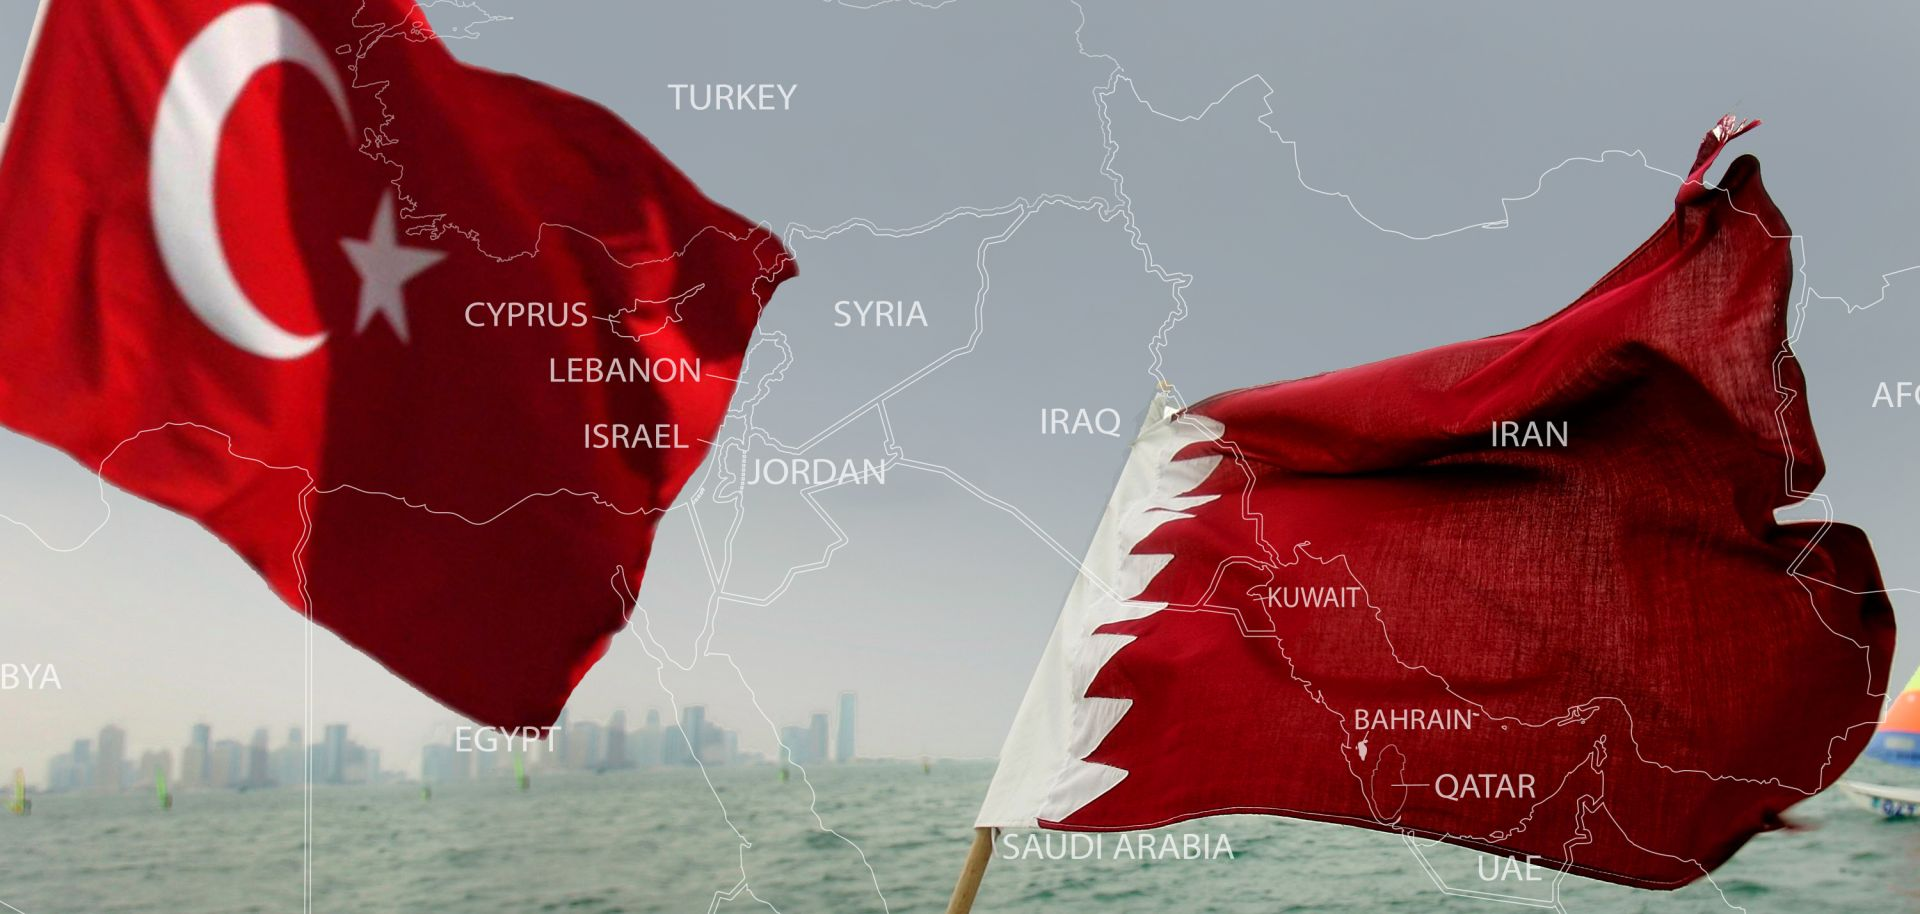 The diplomatic break between Qatar and its Gulf neighbors threatens to pull Turkey into another Middle Eastern conflict.